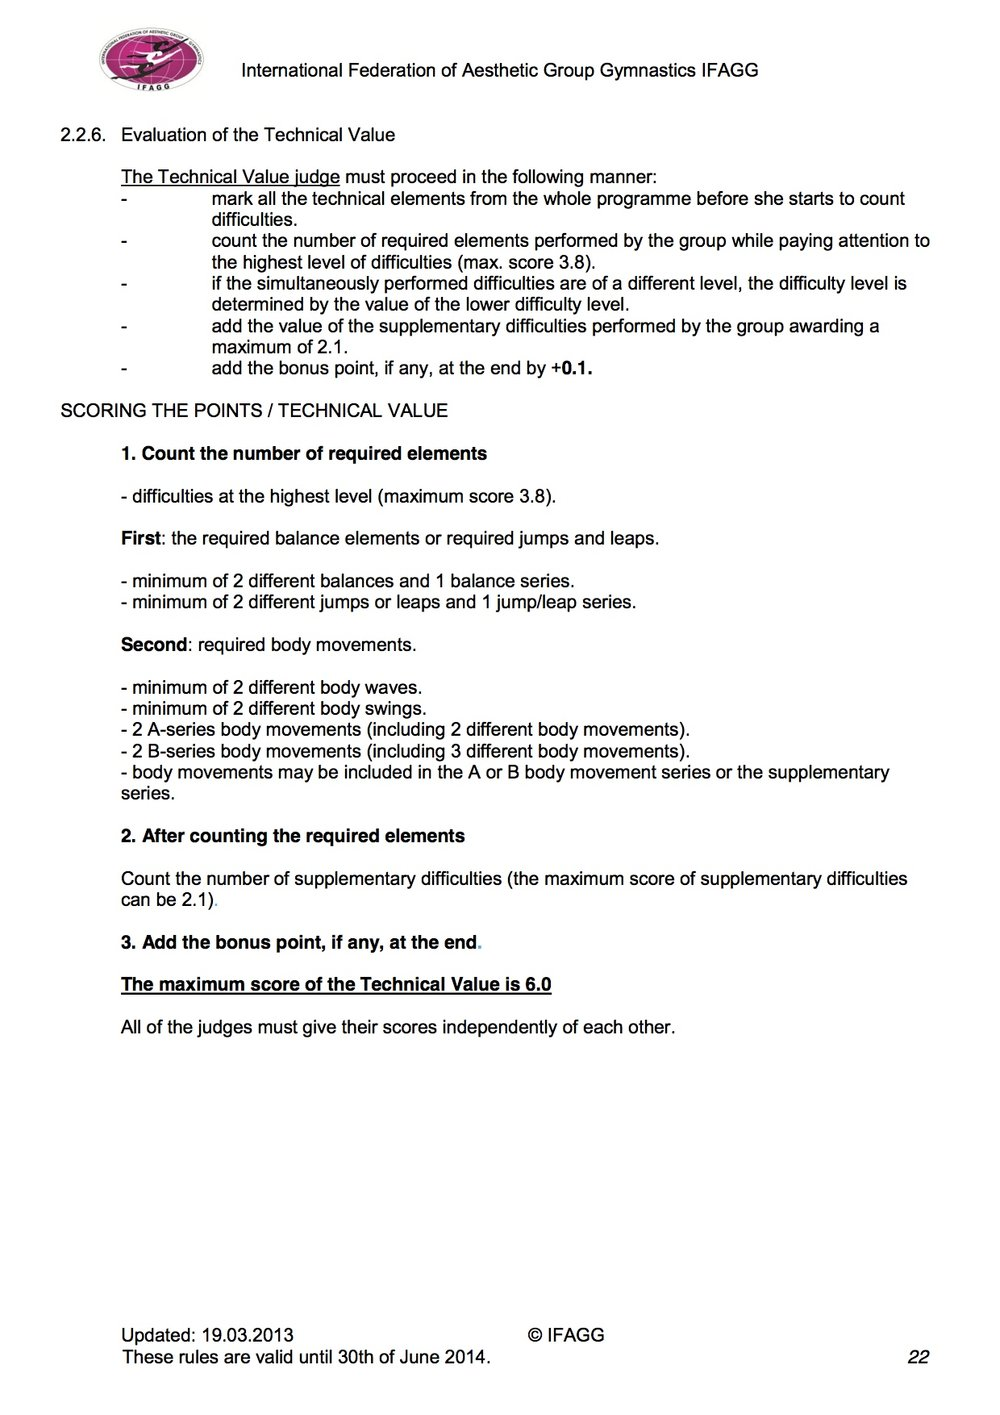 IFAGG Competition rules22.jpg